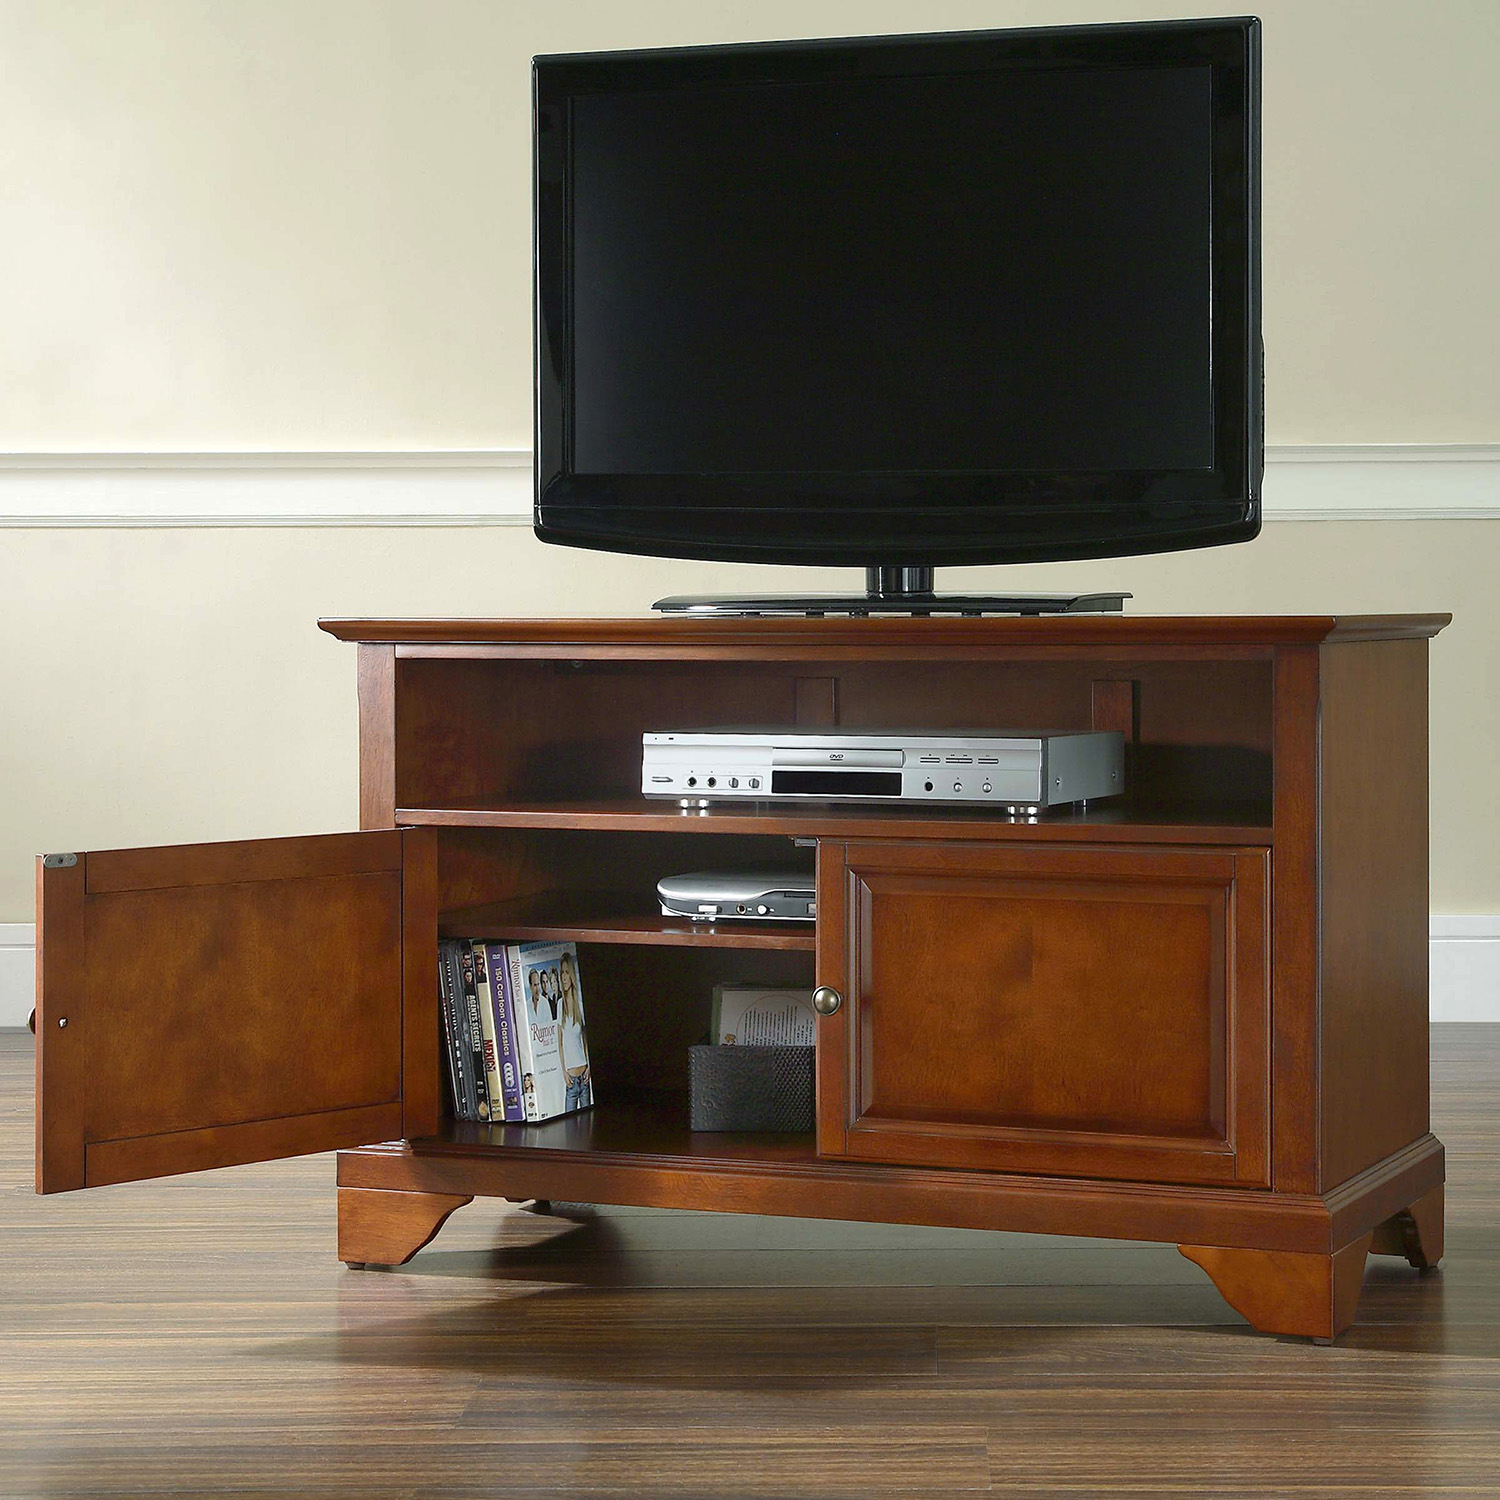 "LaFayette 42"" TV Stand - Classic Cherry - CROS-KF10003BCH"